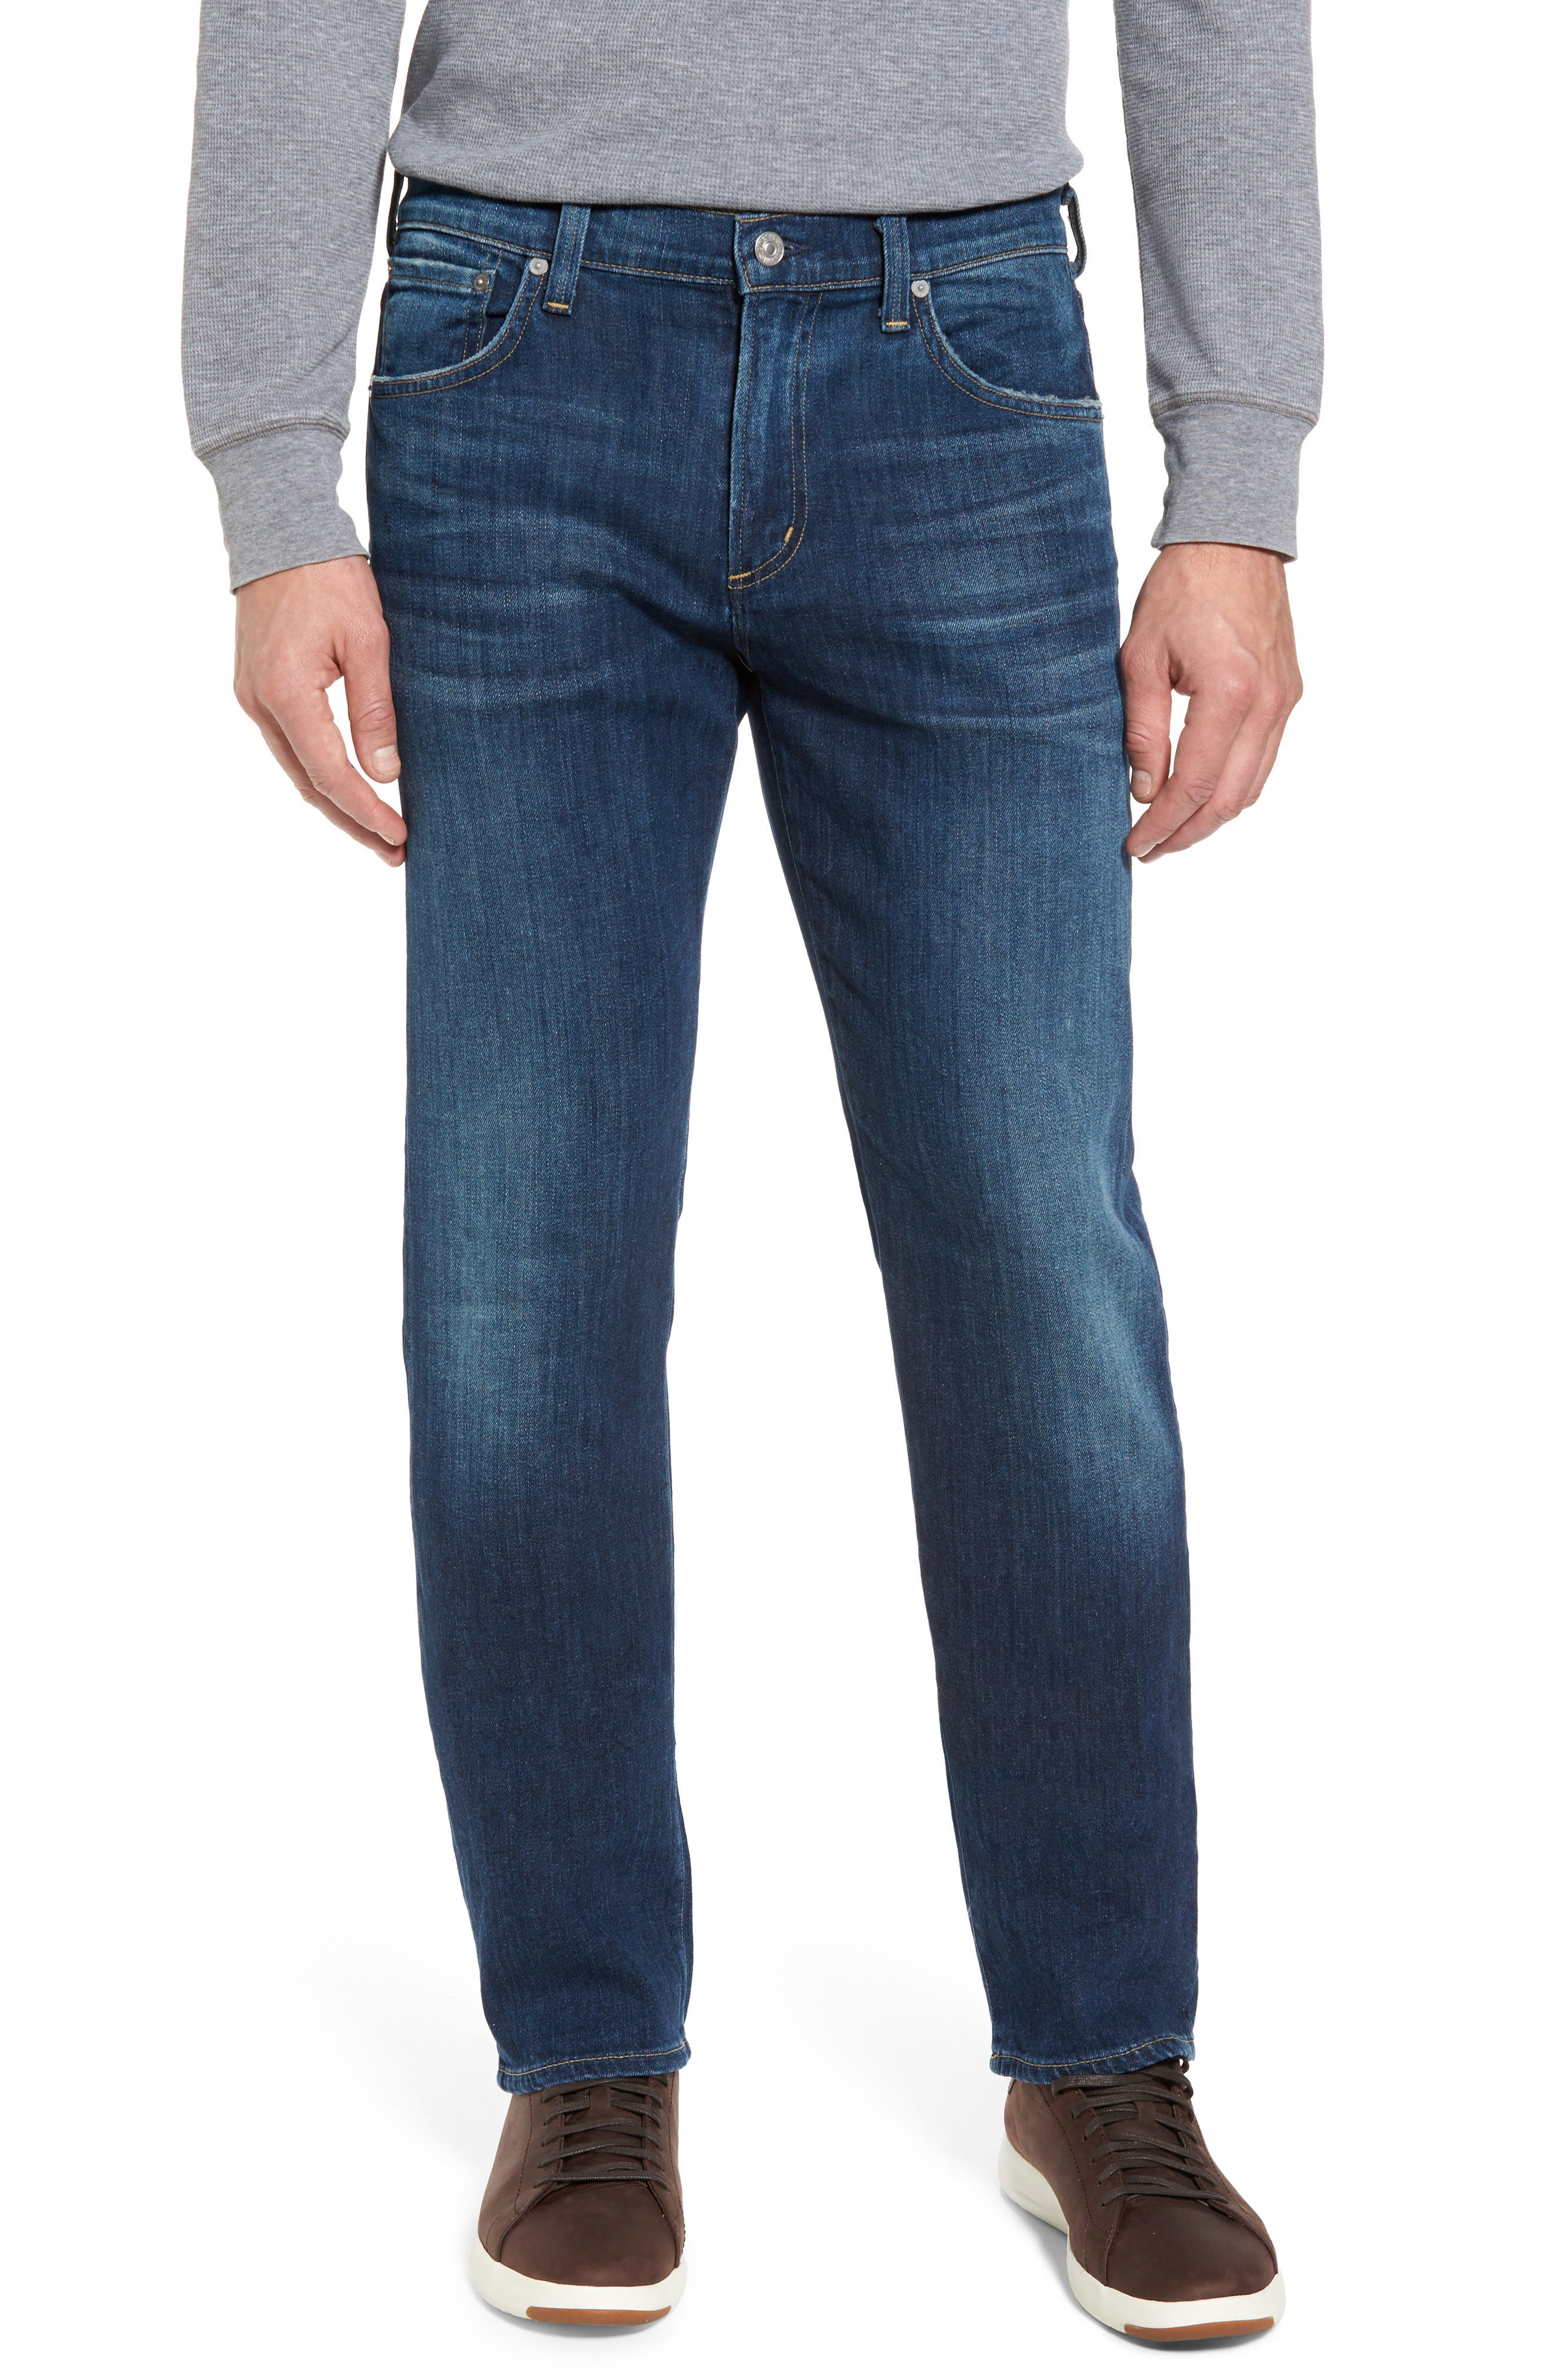 Alternate Image 1 Selected - Citizens of Humanity Sid Straight Fit Jeans (Atticus)